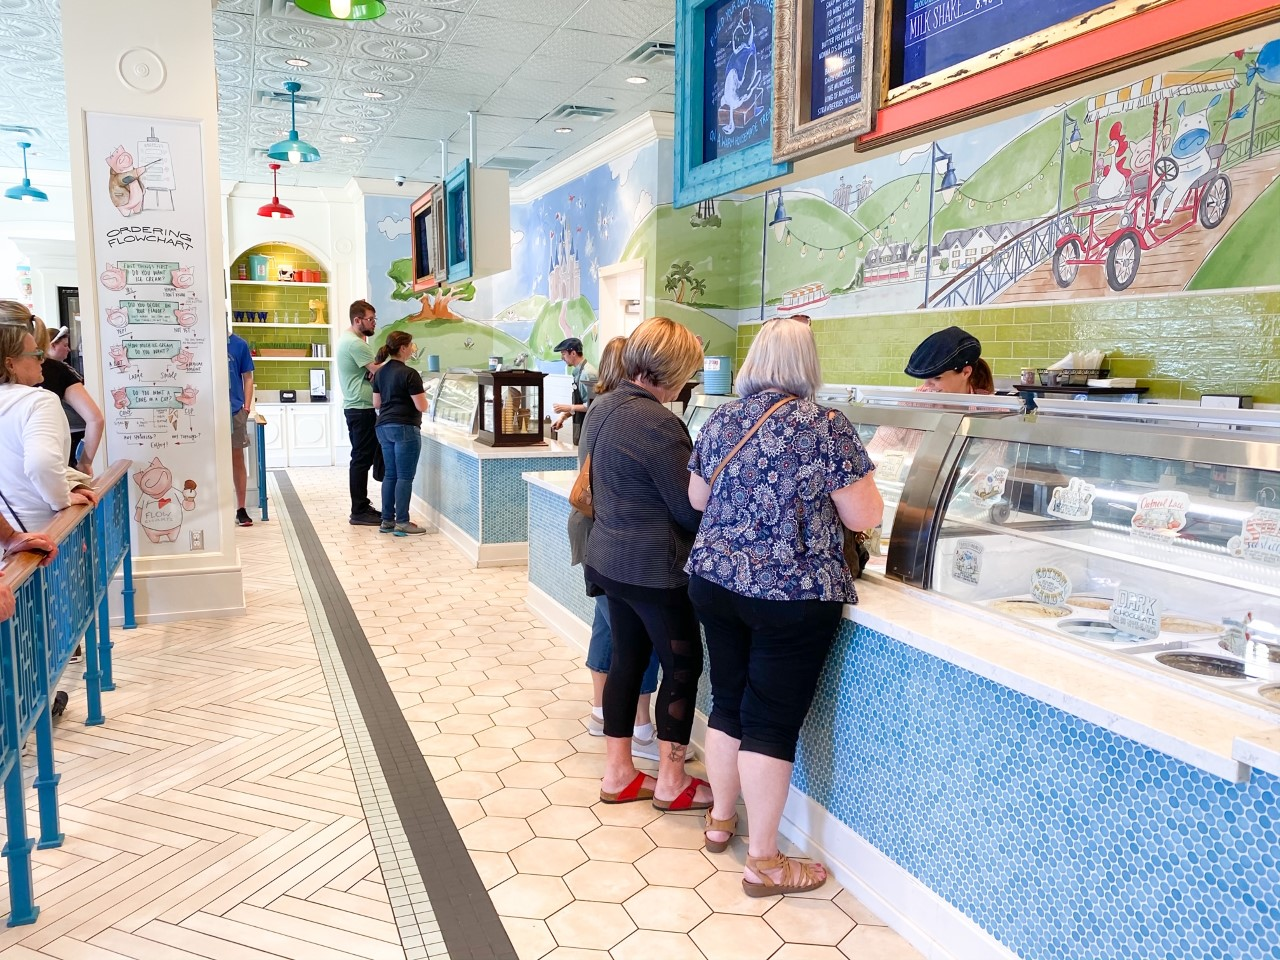 photo of people ordering their food at Disney counter service restaurant